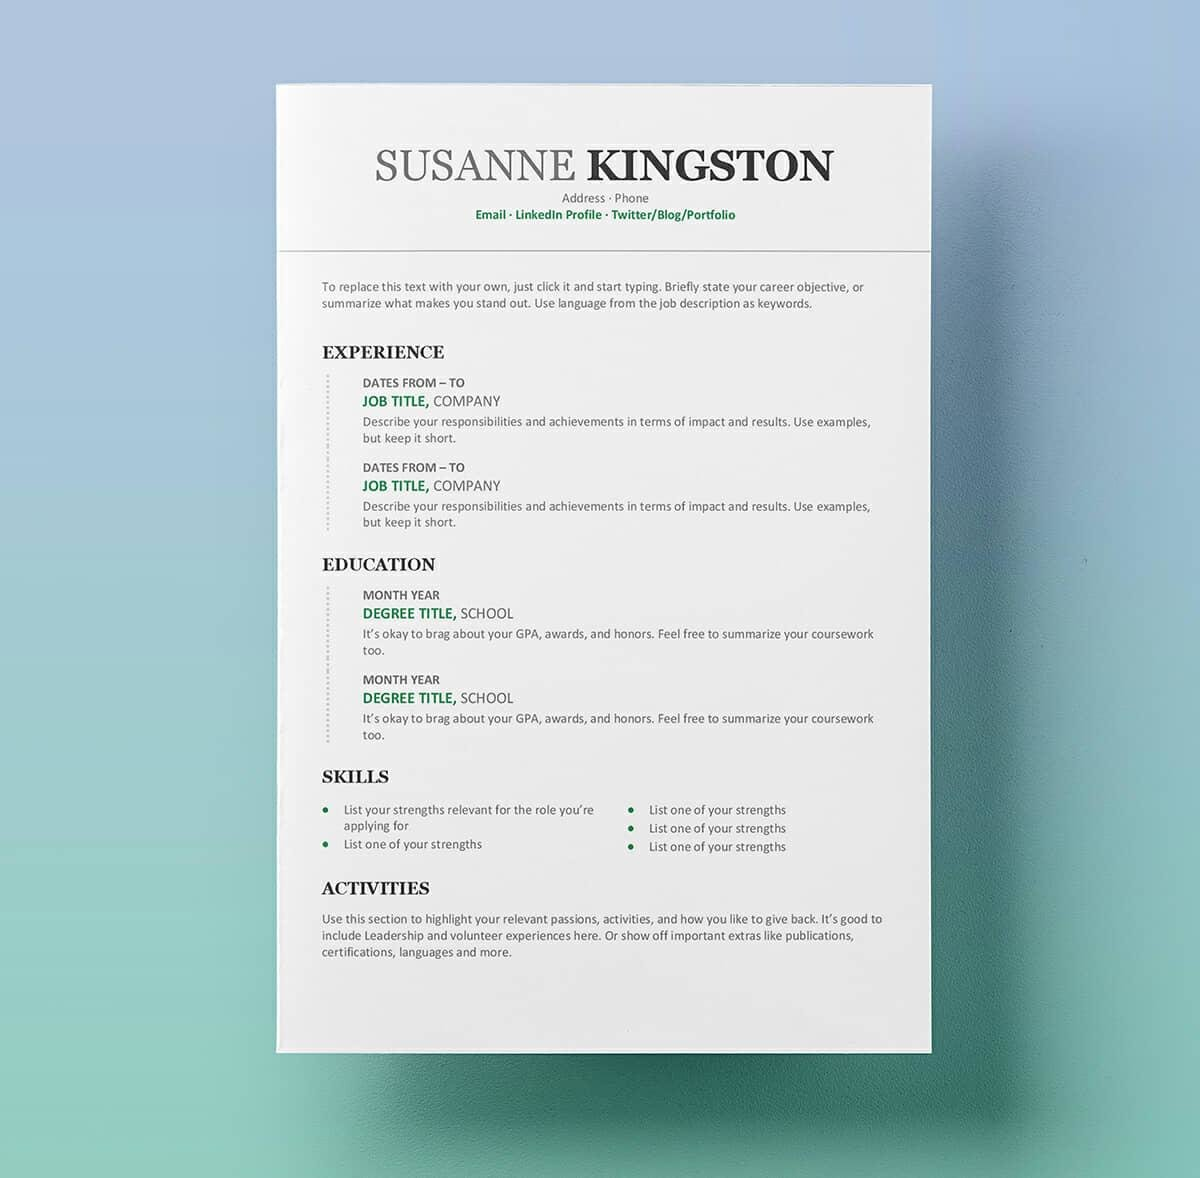 resume templates for word free 15 examples for download - How To Use Resume Template In Word